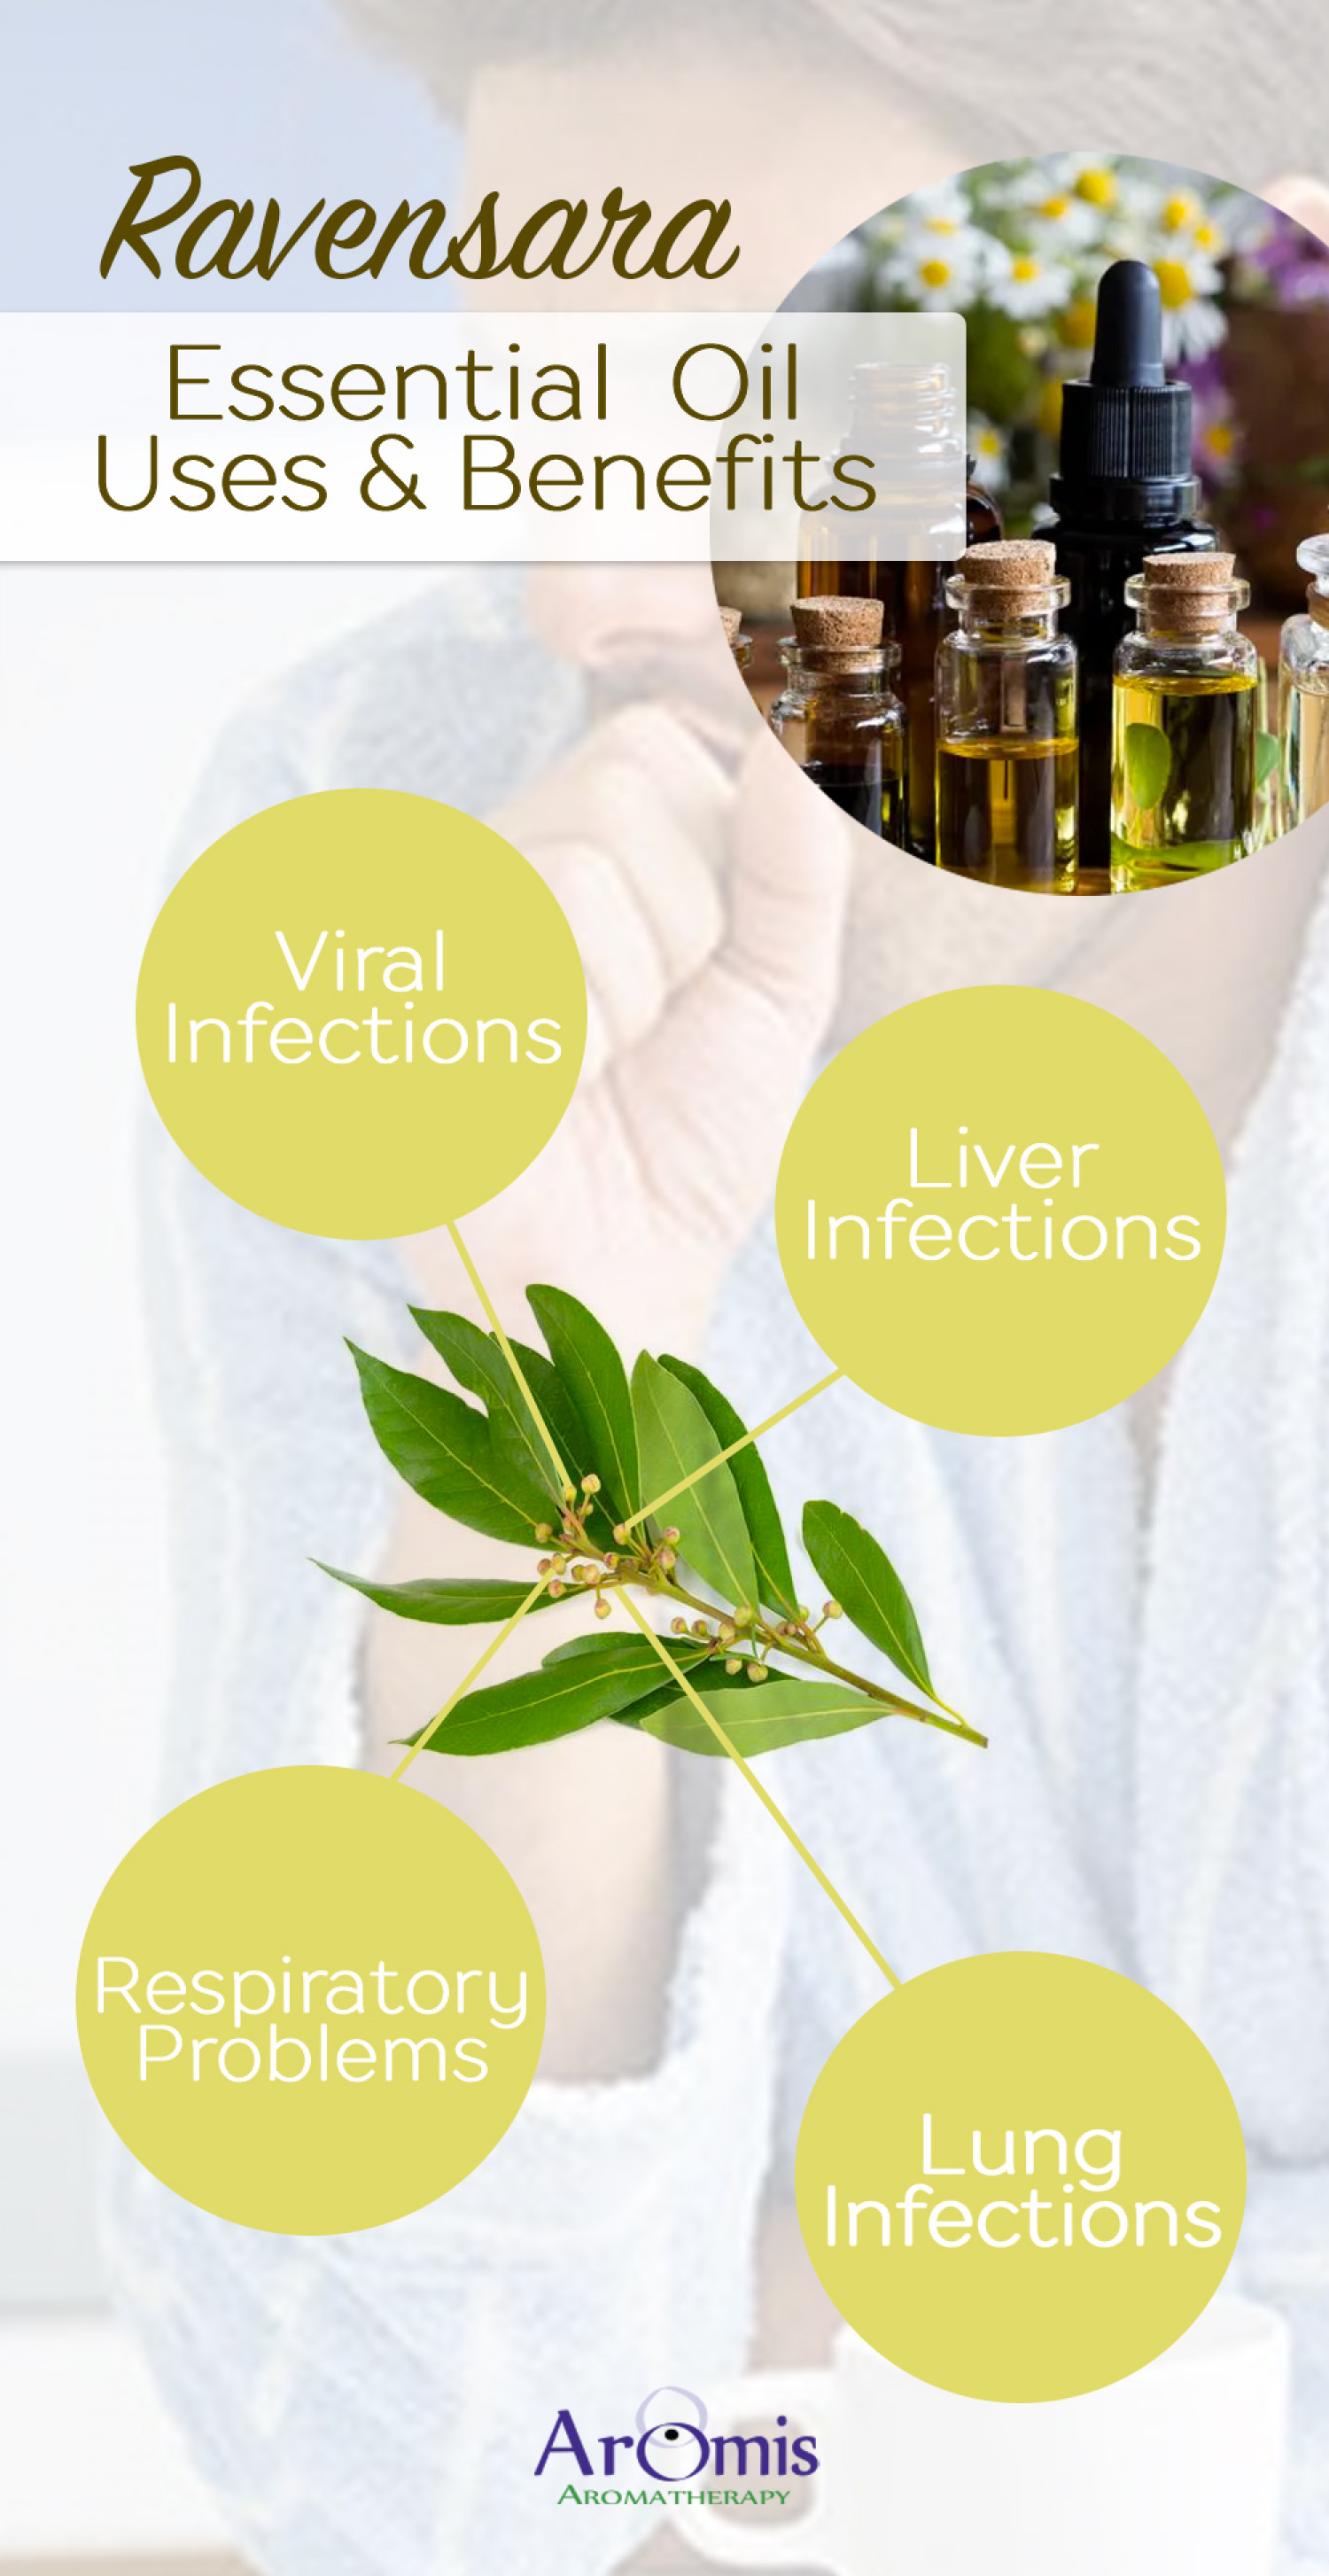 Ravensara Essential Oils Uses and Benefits Infographic